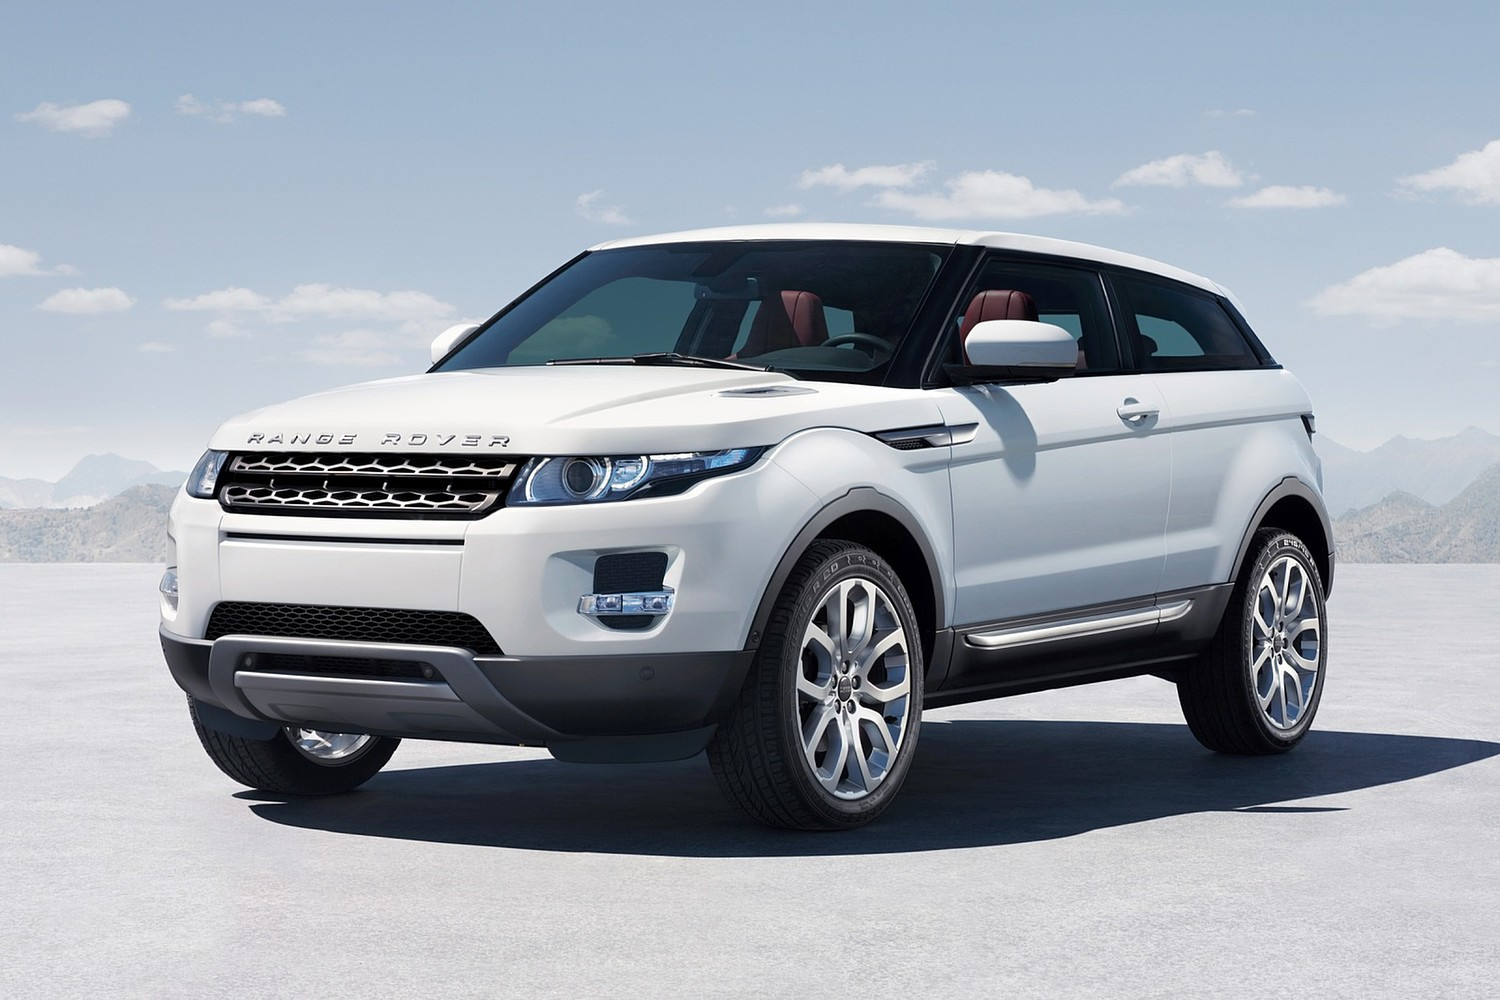 Land Rover Range Rover Evoque Pure Plus 2dr SUV Exterior (2014 model year shown)